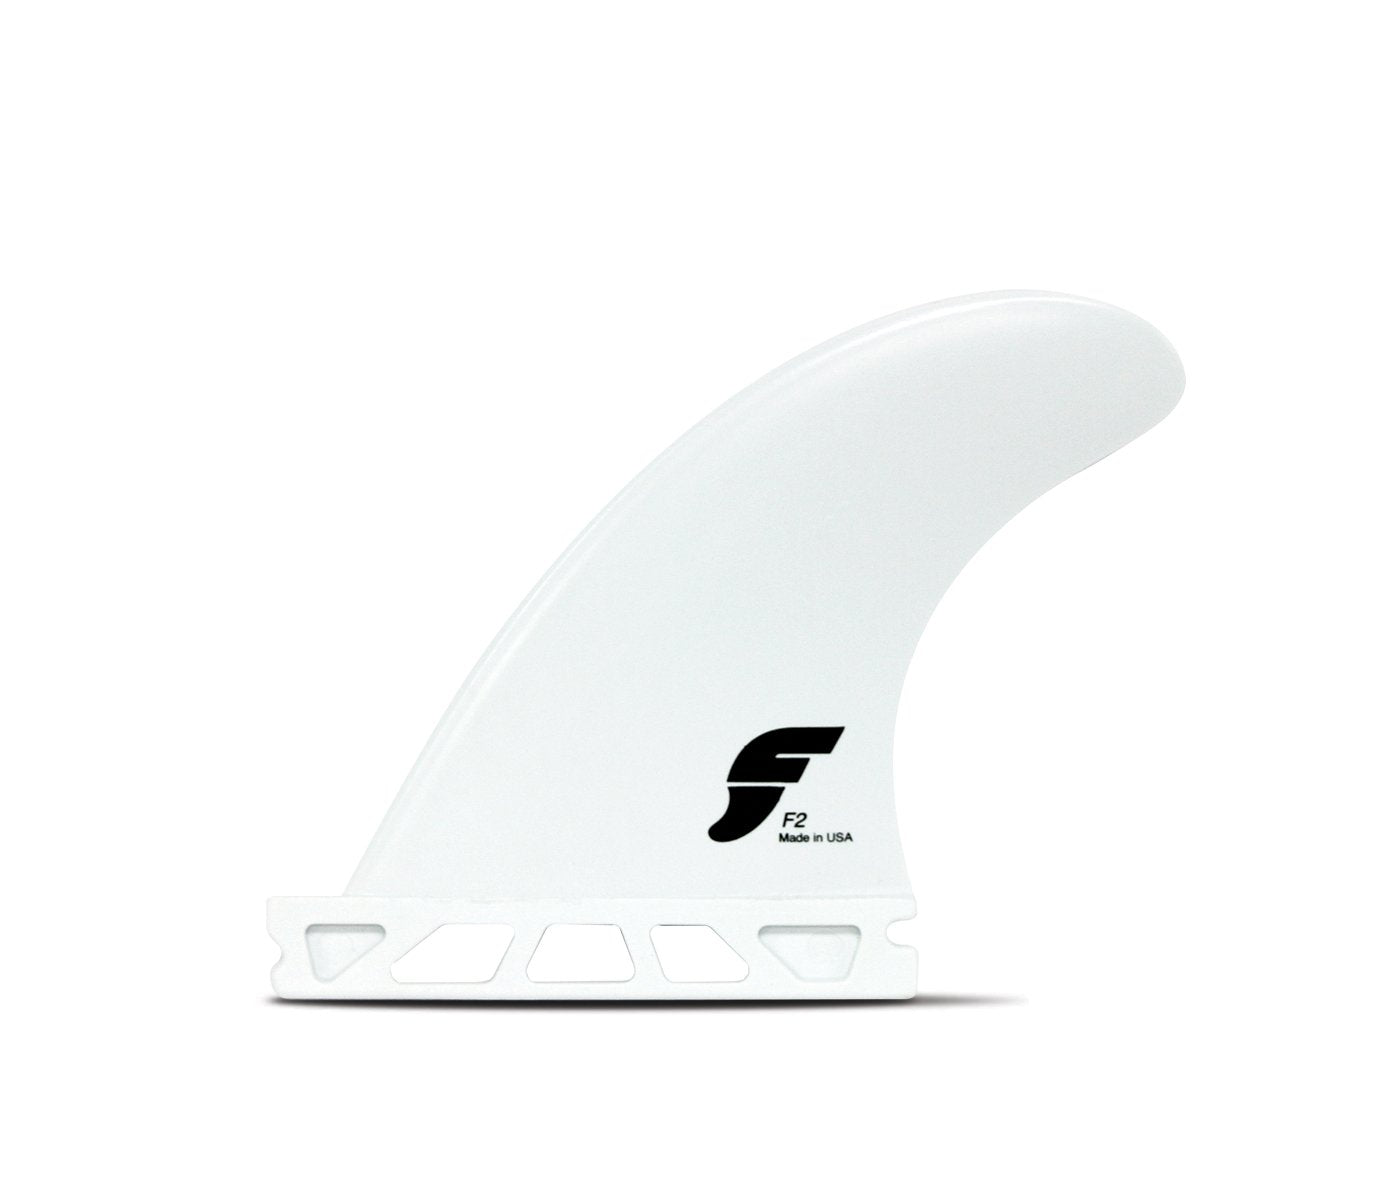 Futures F2 Thermotech - Board Store FuturesFins